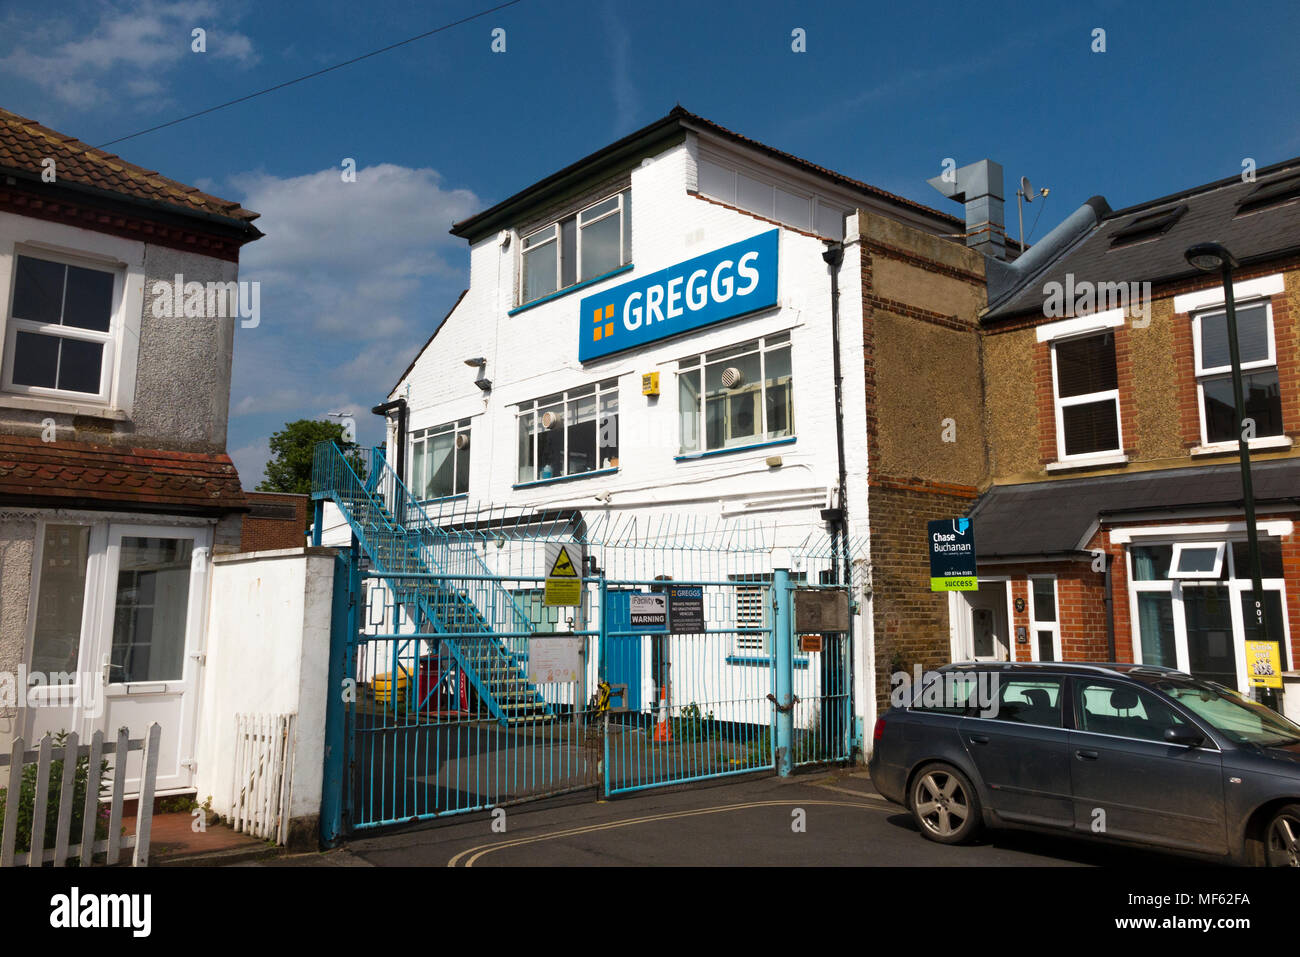 Greggs bakery in Twickenham which is closing due to its location and size. The site is likely to be redeveloped and become residential housing  Twickenham, UK. (96) - Stock Image